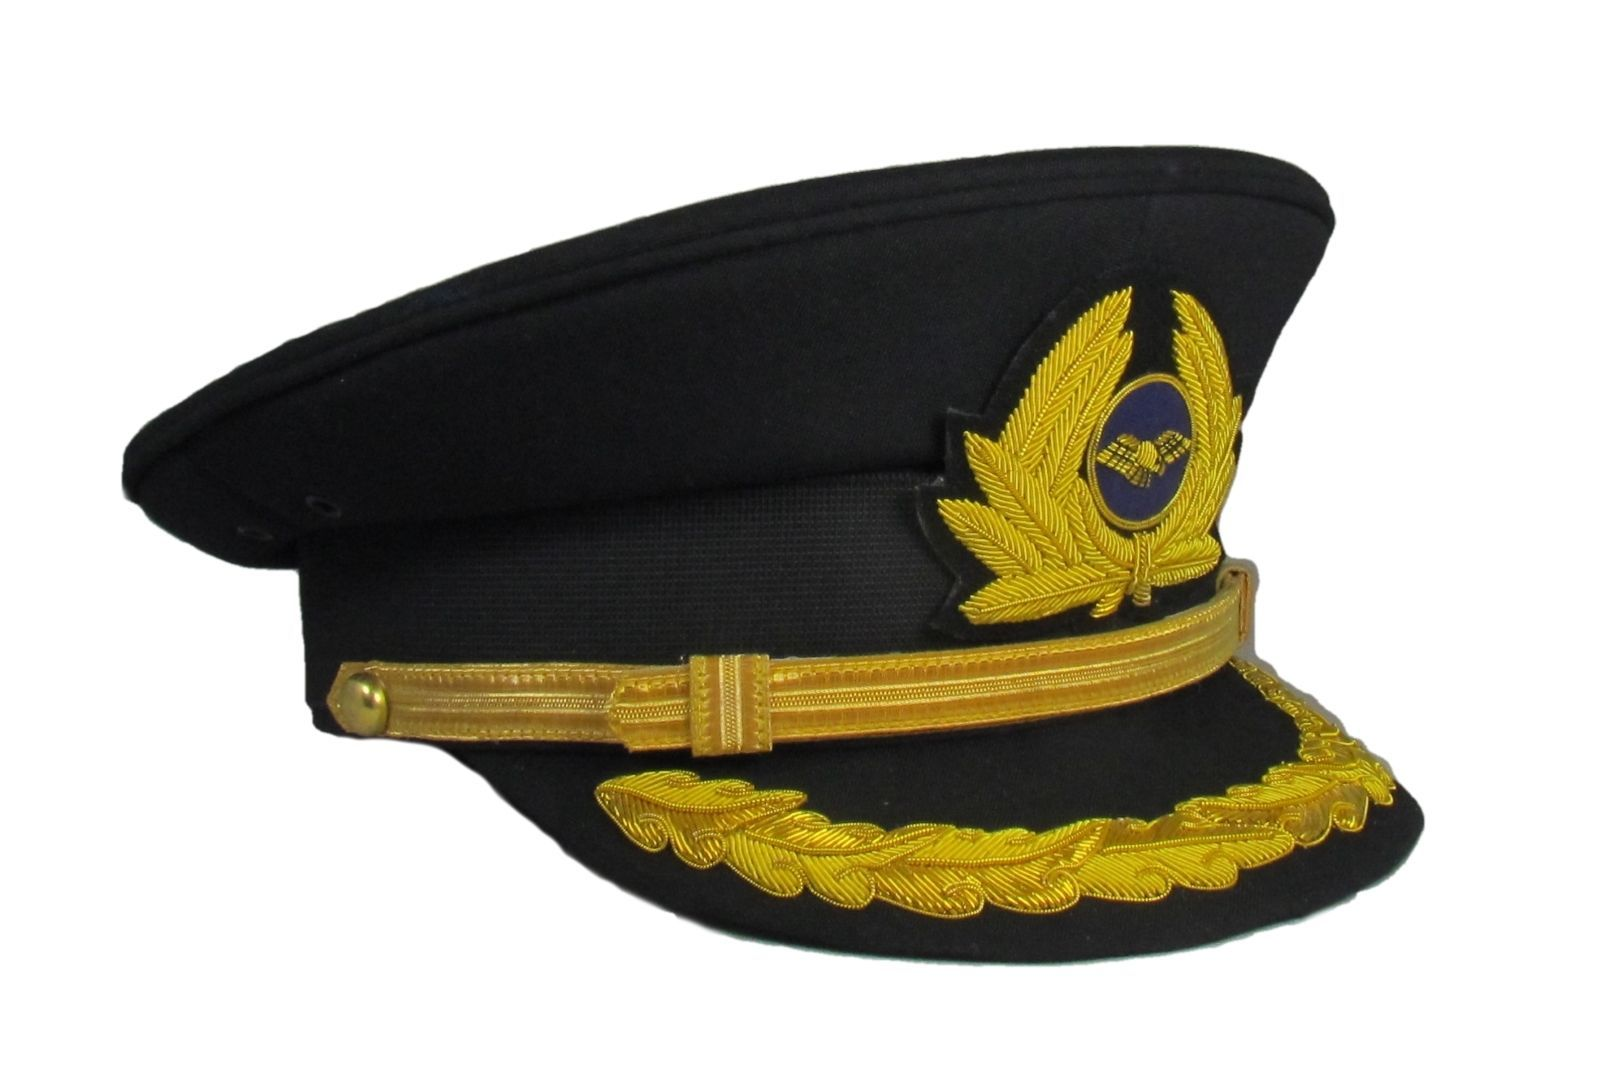 Pilot Cap 1 Row Gold Peak with Generic Cap Badge Black Airline Cap R1836 e825396bbb6